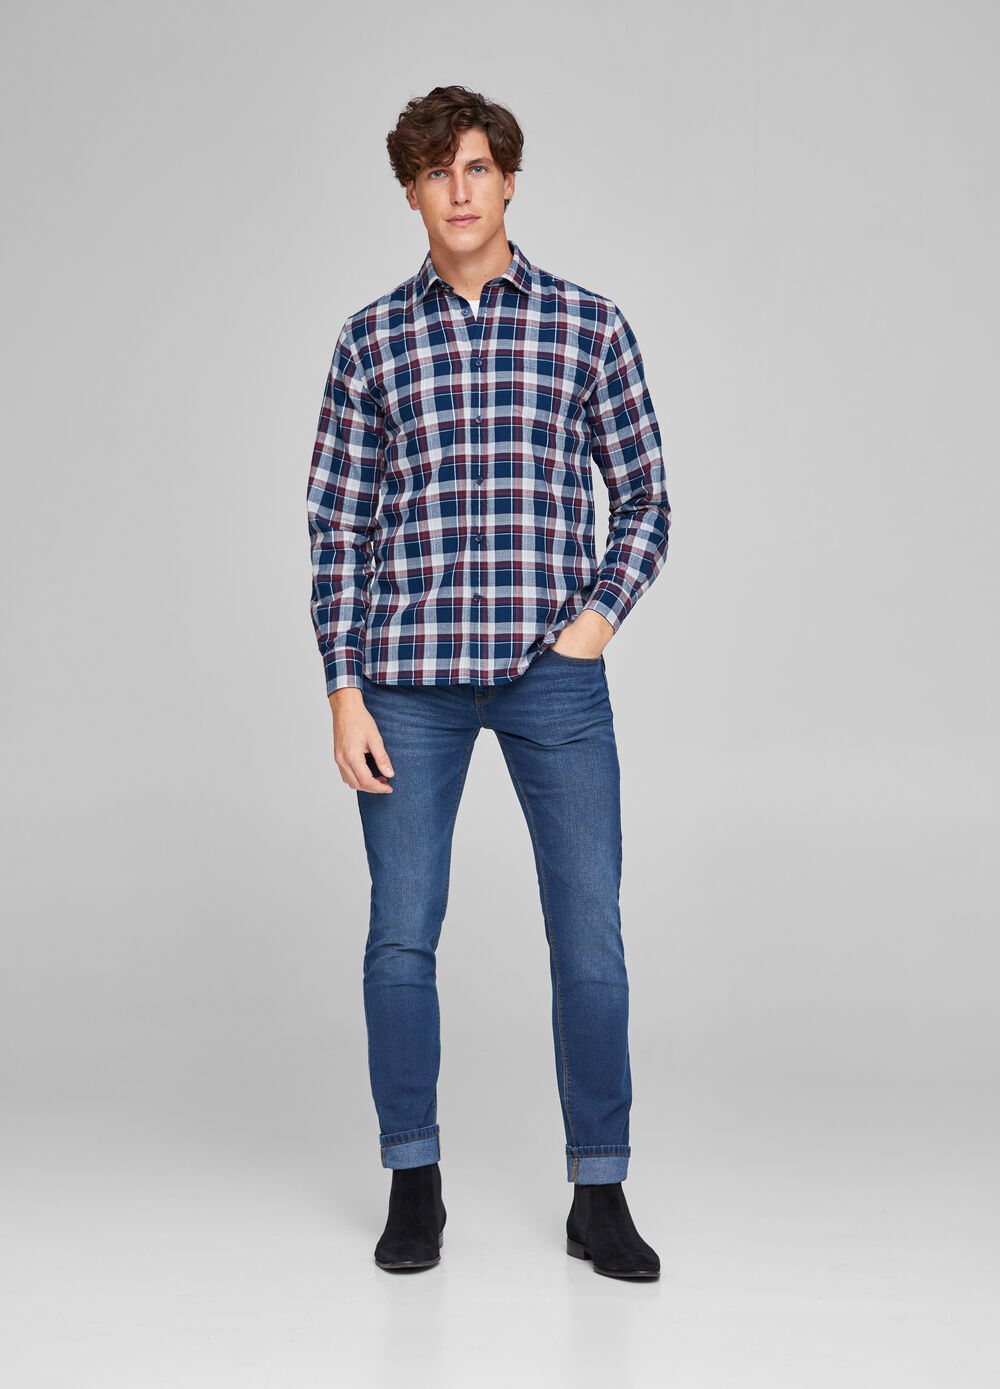 Casual shirt with small pocket